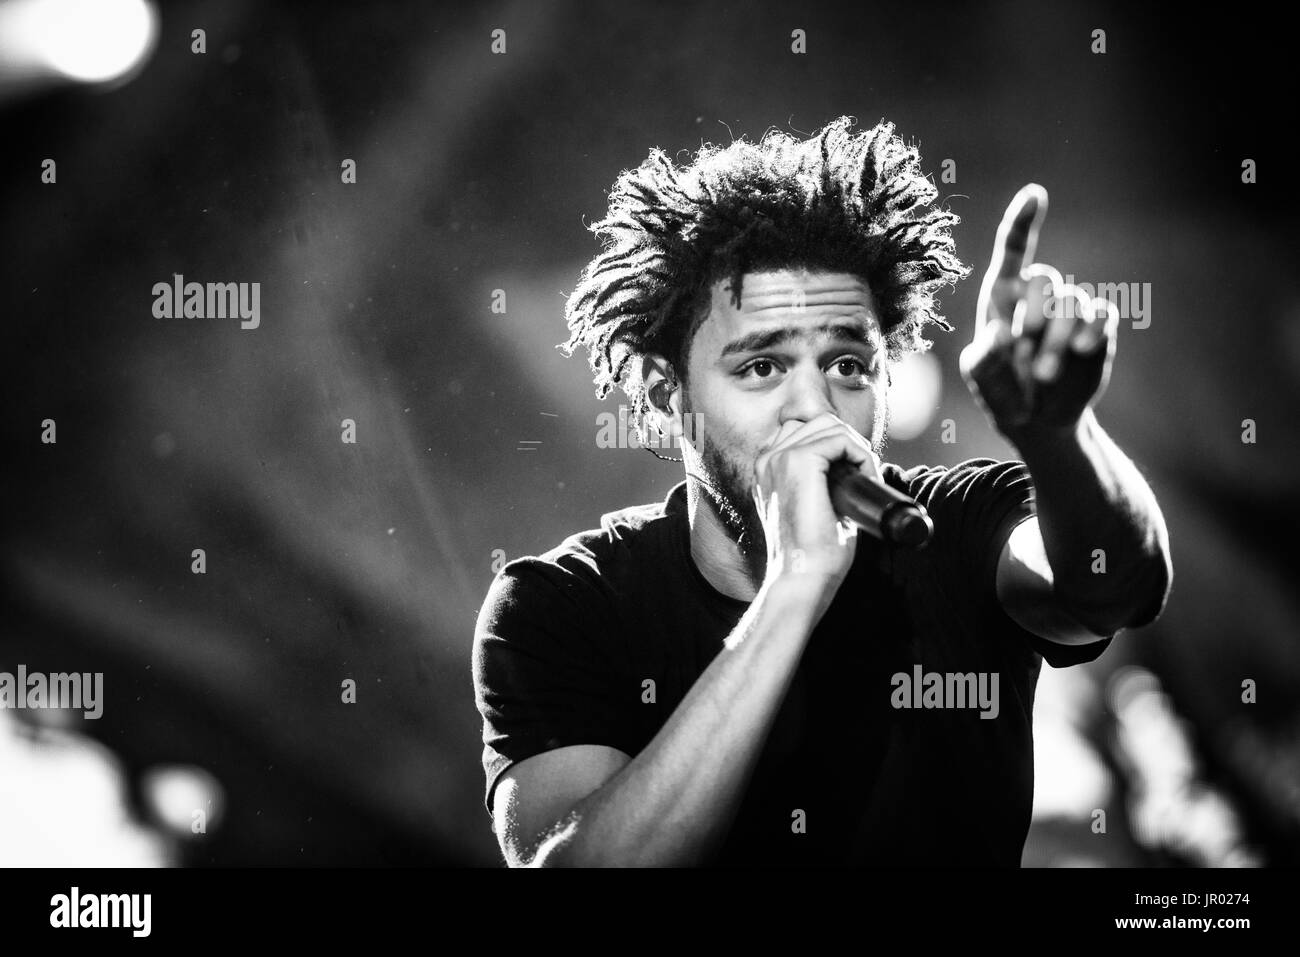 J cole performing at a music festival in british columbia canada in black and white